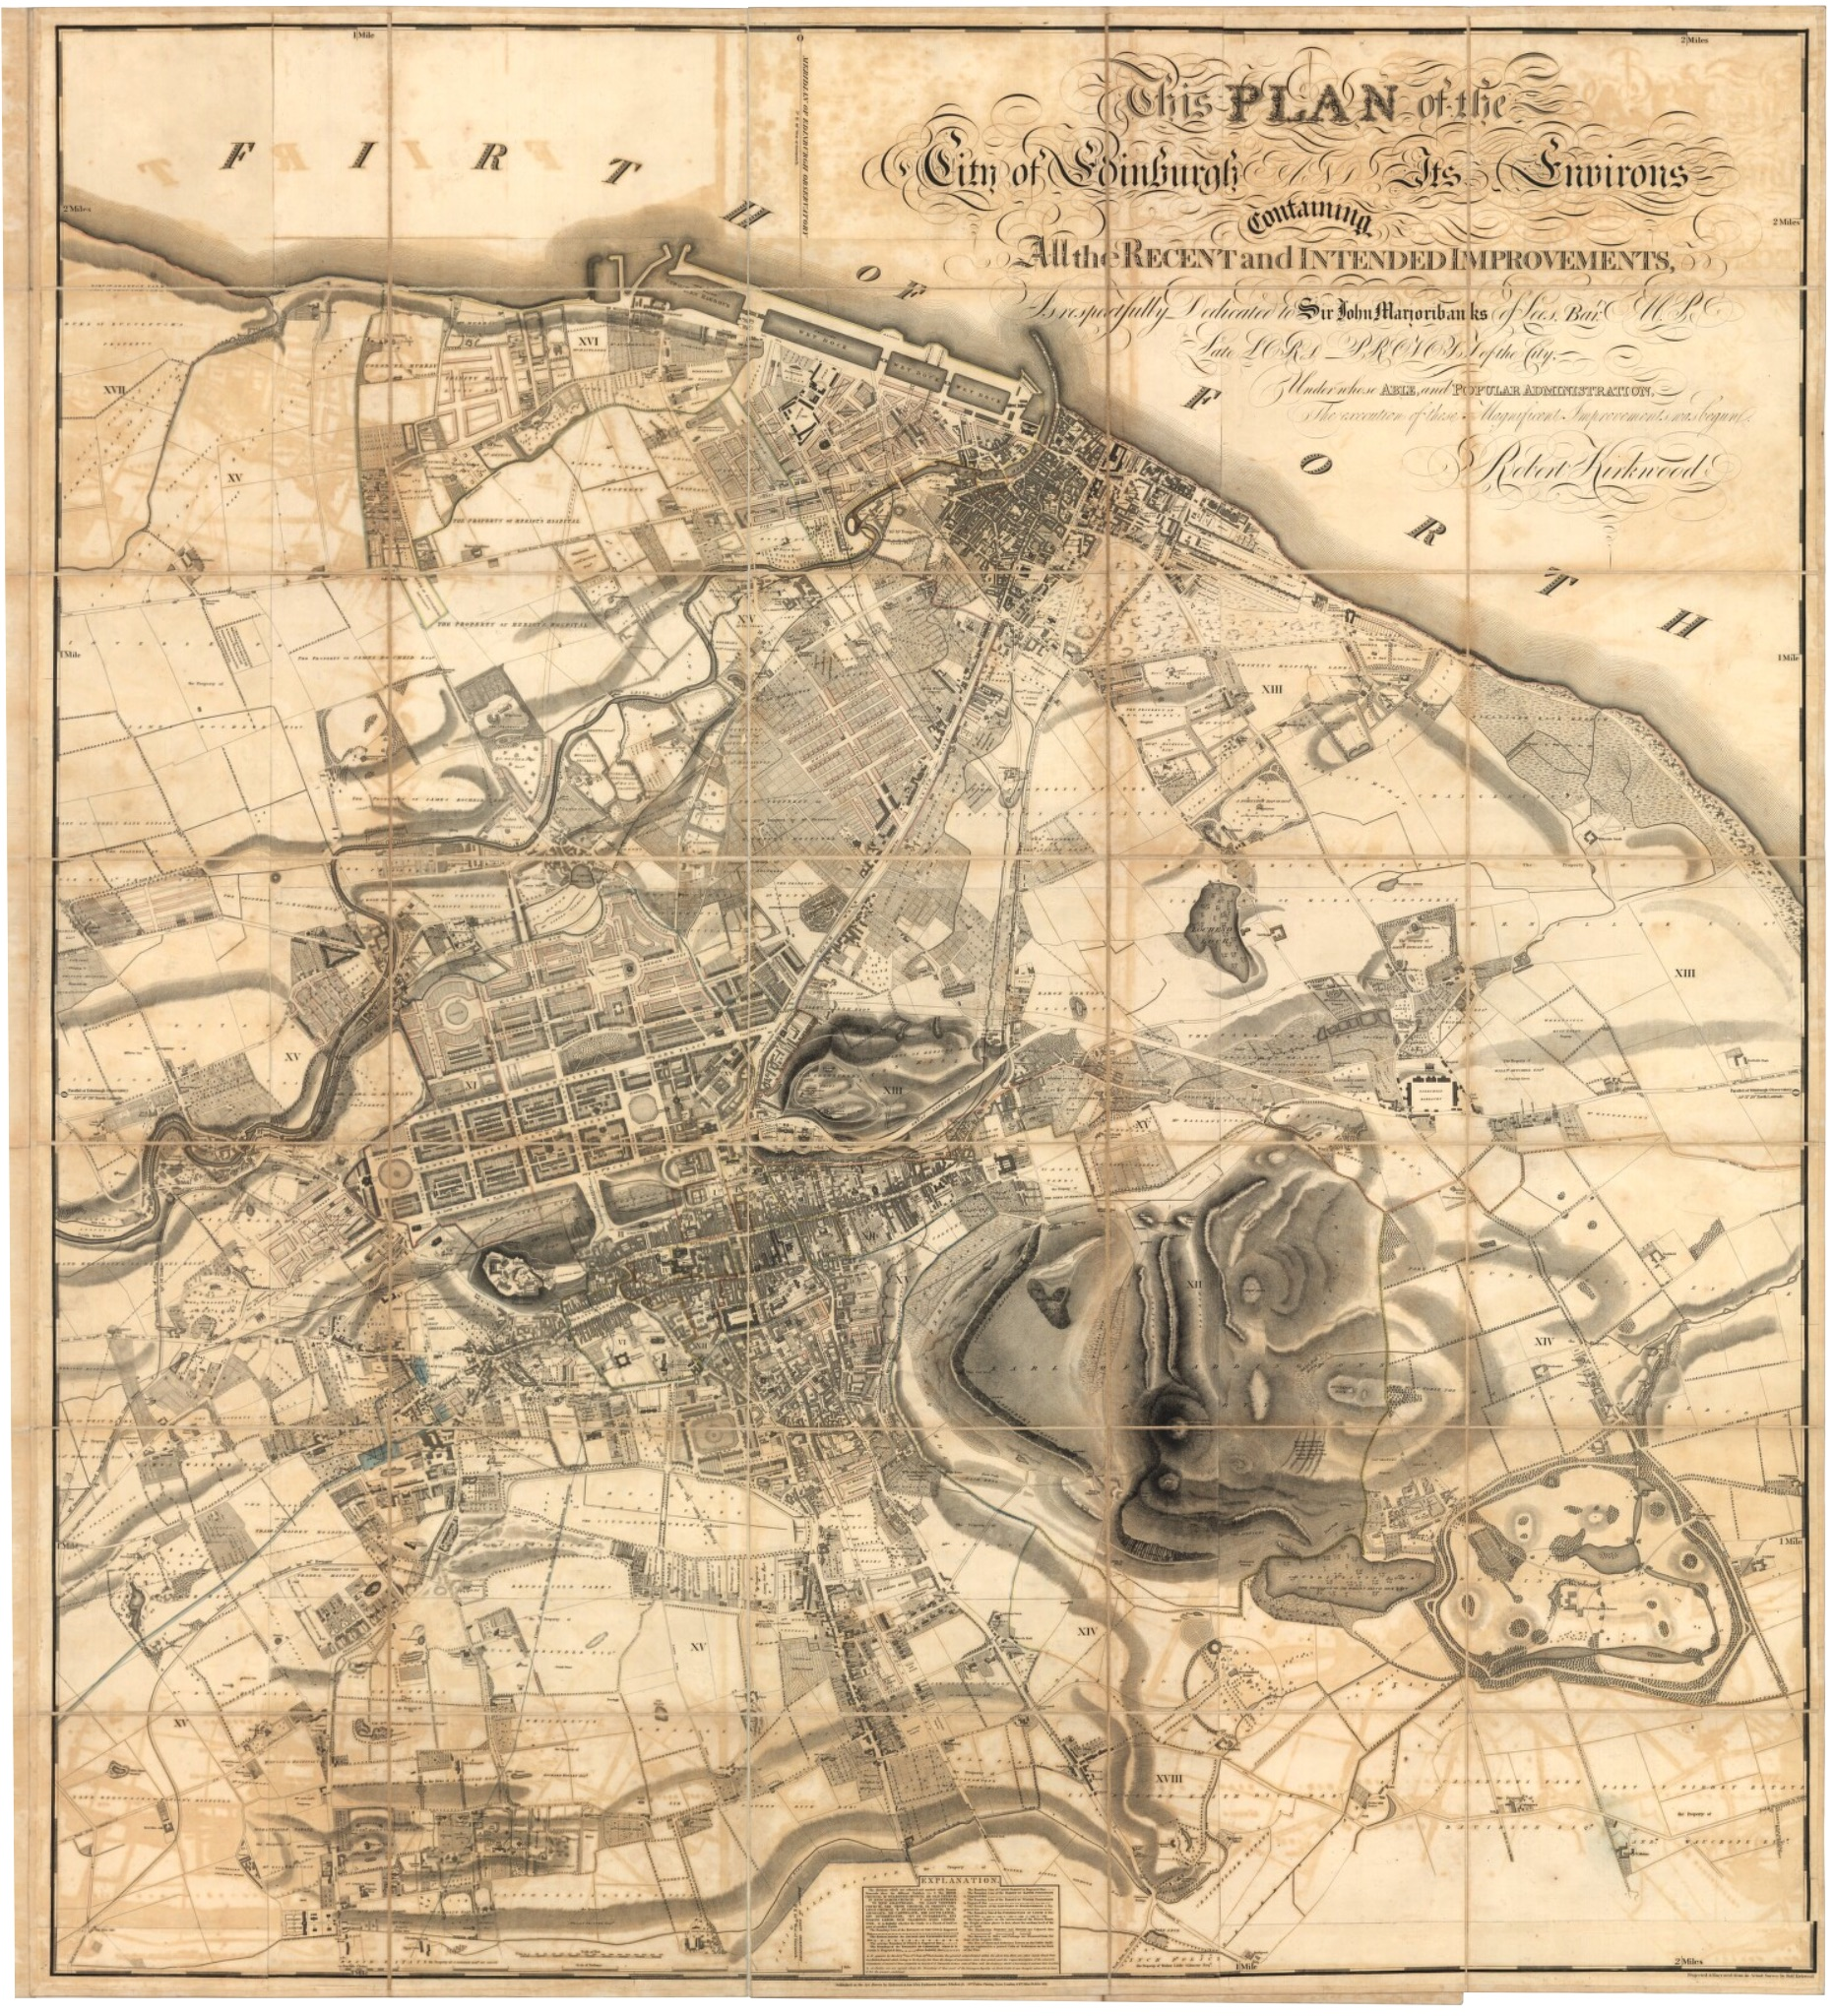 An antique map of the City of Edinburgh from the 1800s.